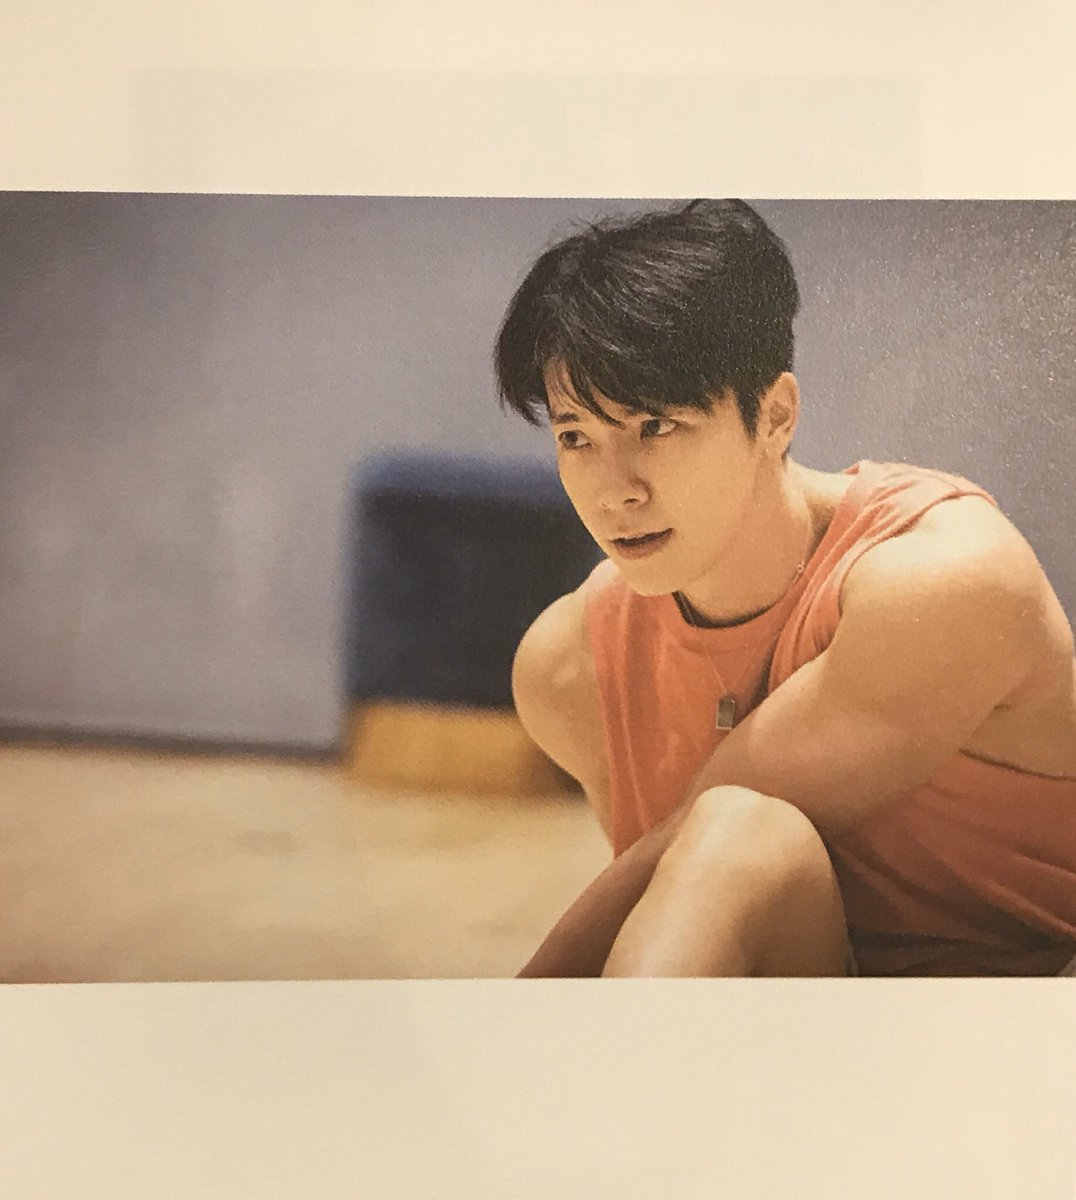 Maybe I should appreciate Donghae's shoulders today?  <br>http://pic.twitter.com/9S6GsAr5Fl